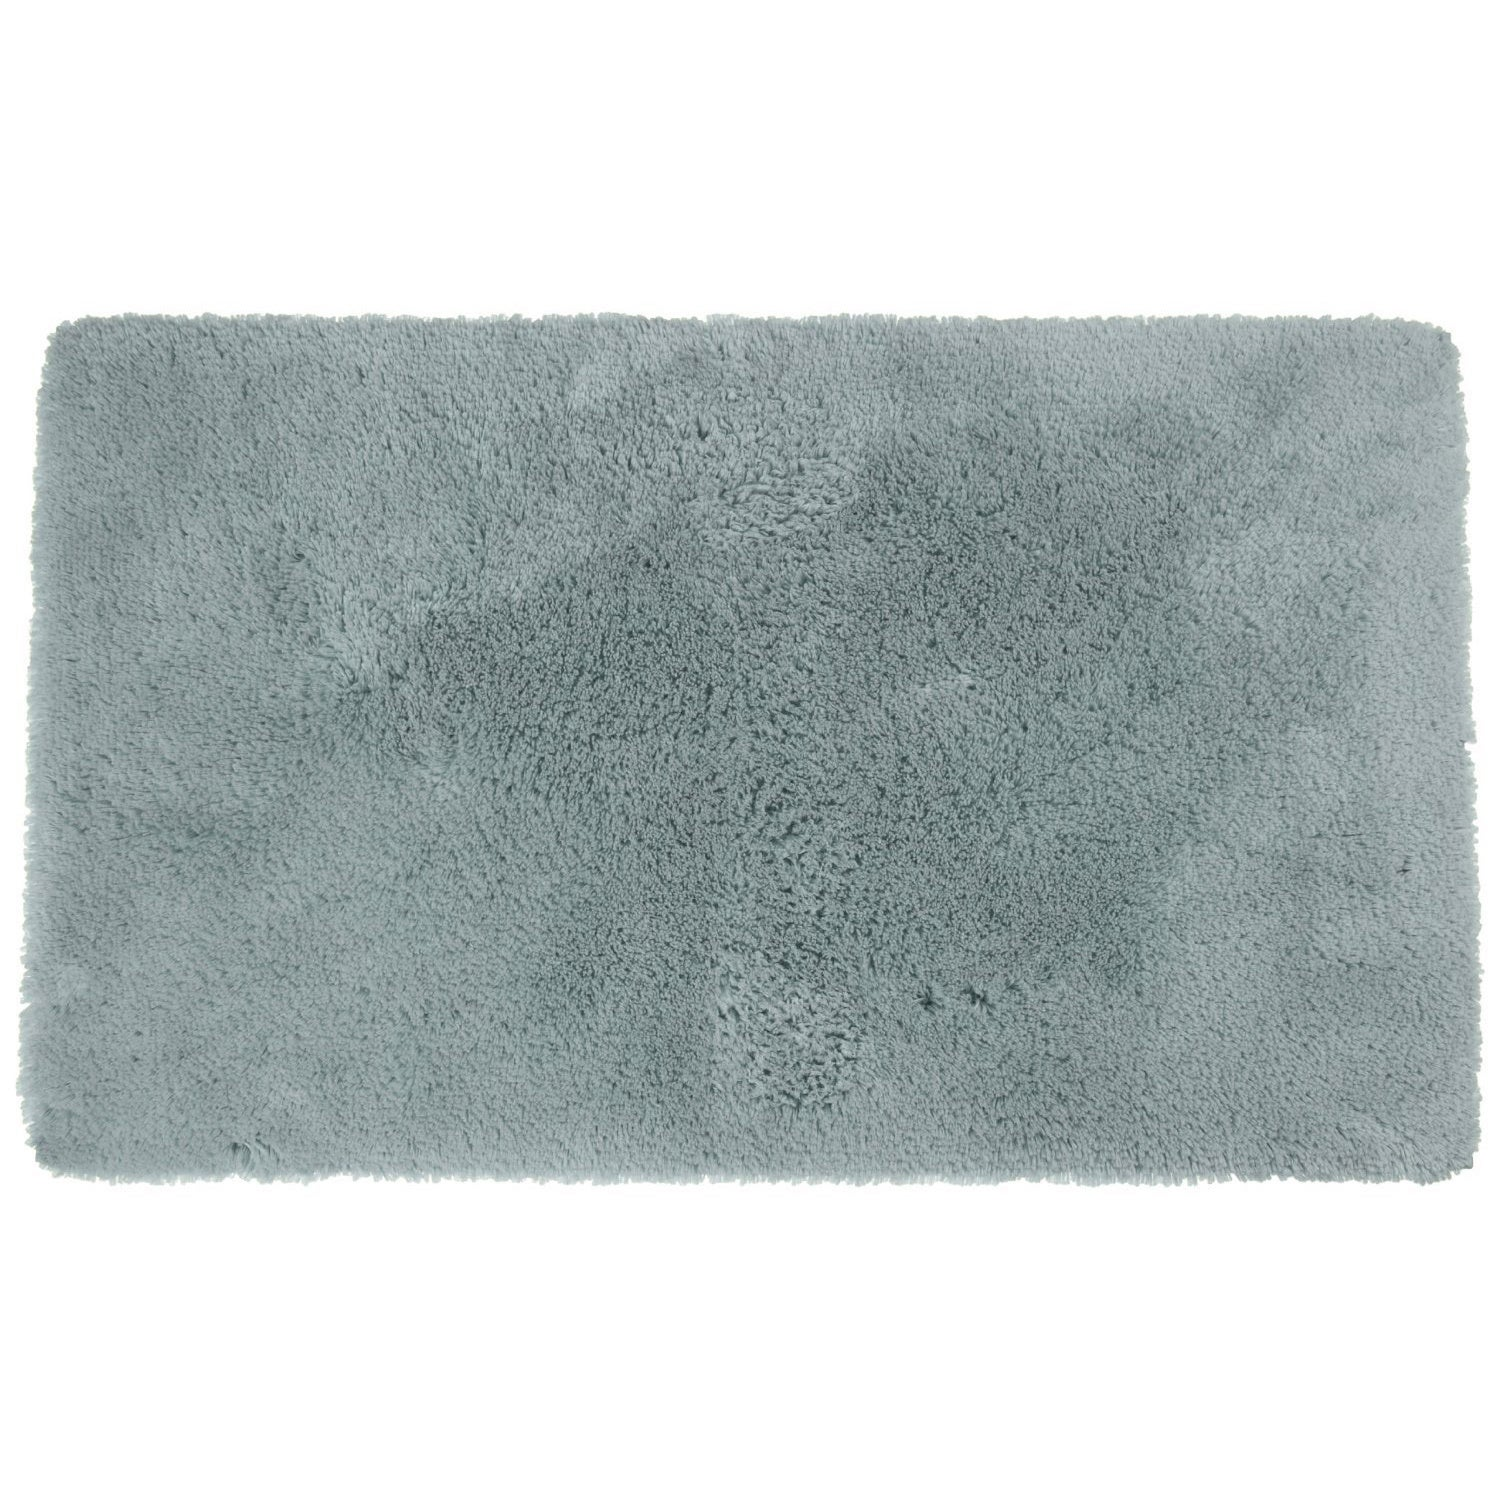 Crowning Touch Luxury Plush Bath Rug - Free Shipping On Orders ...